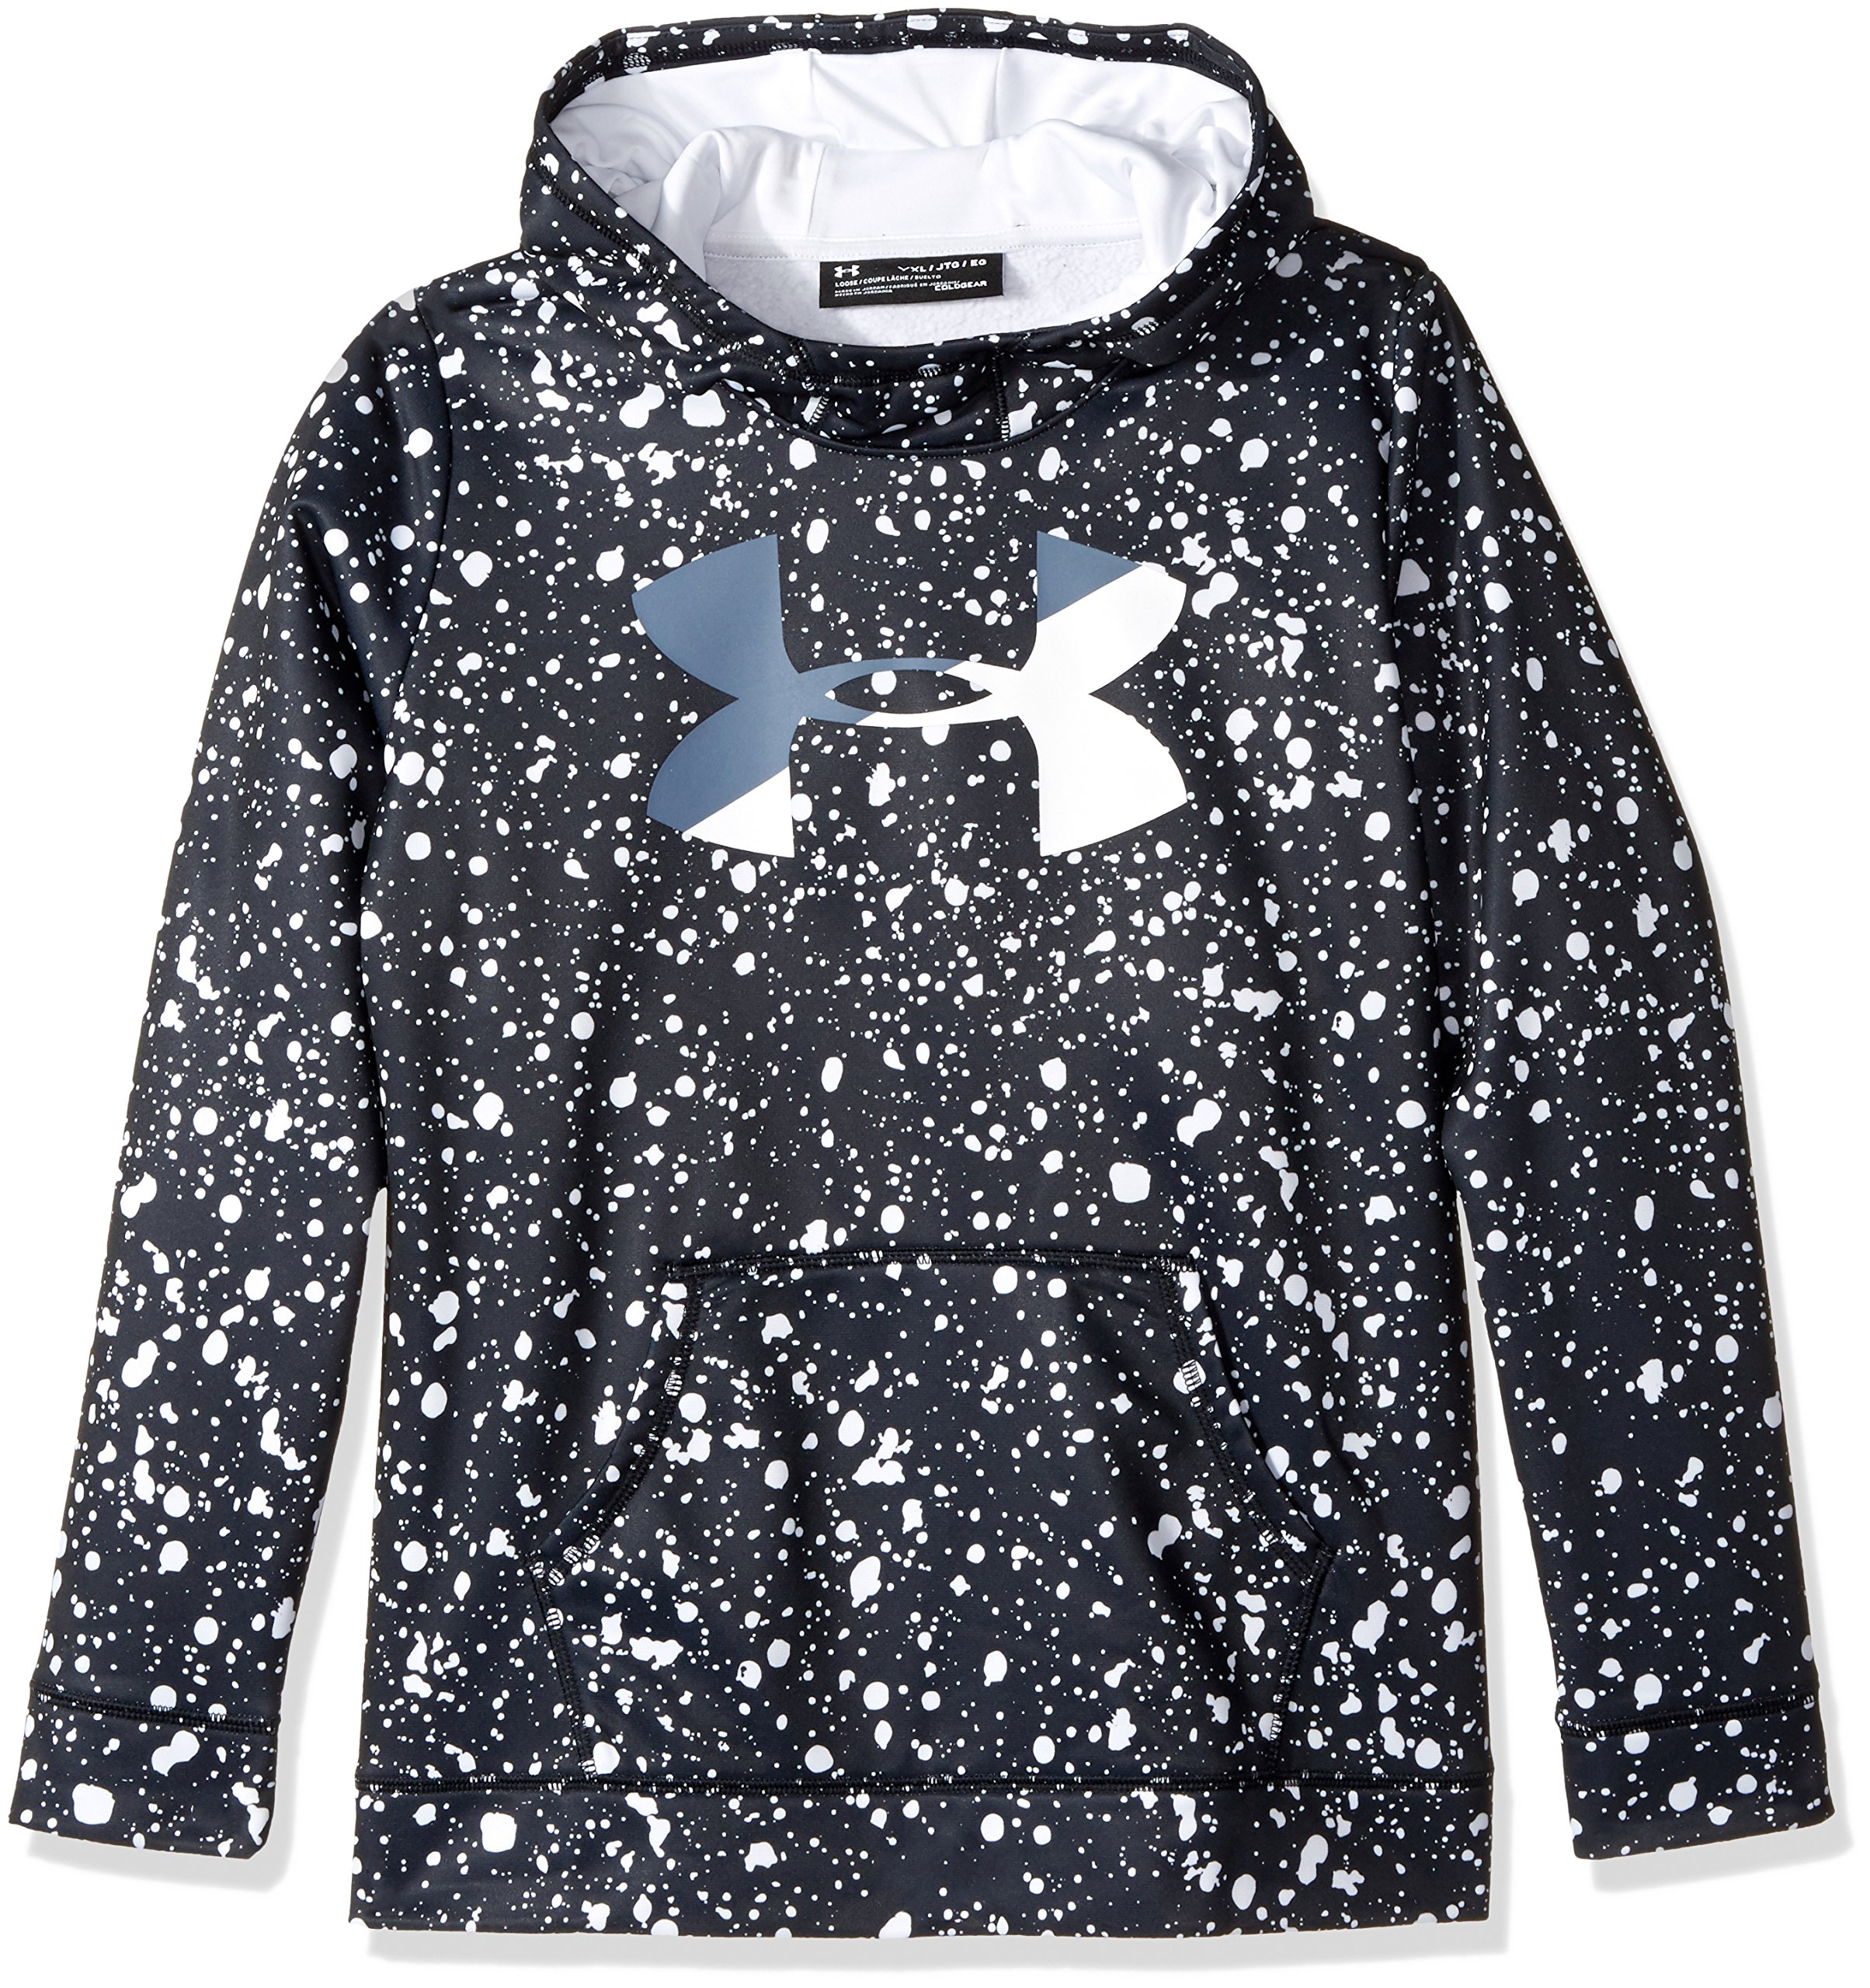 Under Armour Girls' Armour Fleece Big Logo Novelty Hoodie,Black /White, Youth X-Small by Under Armour